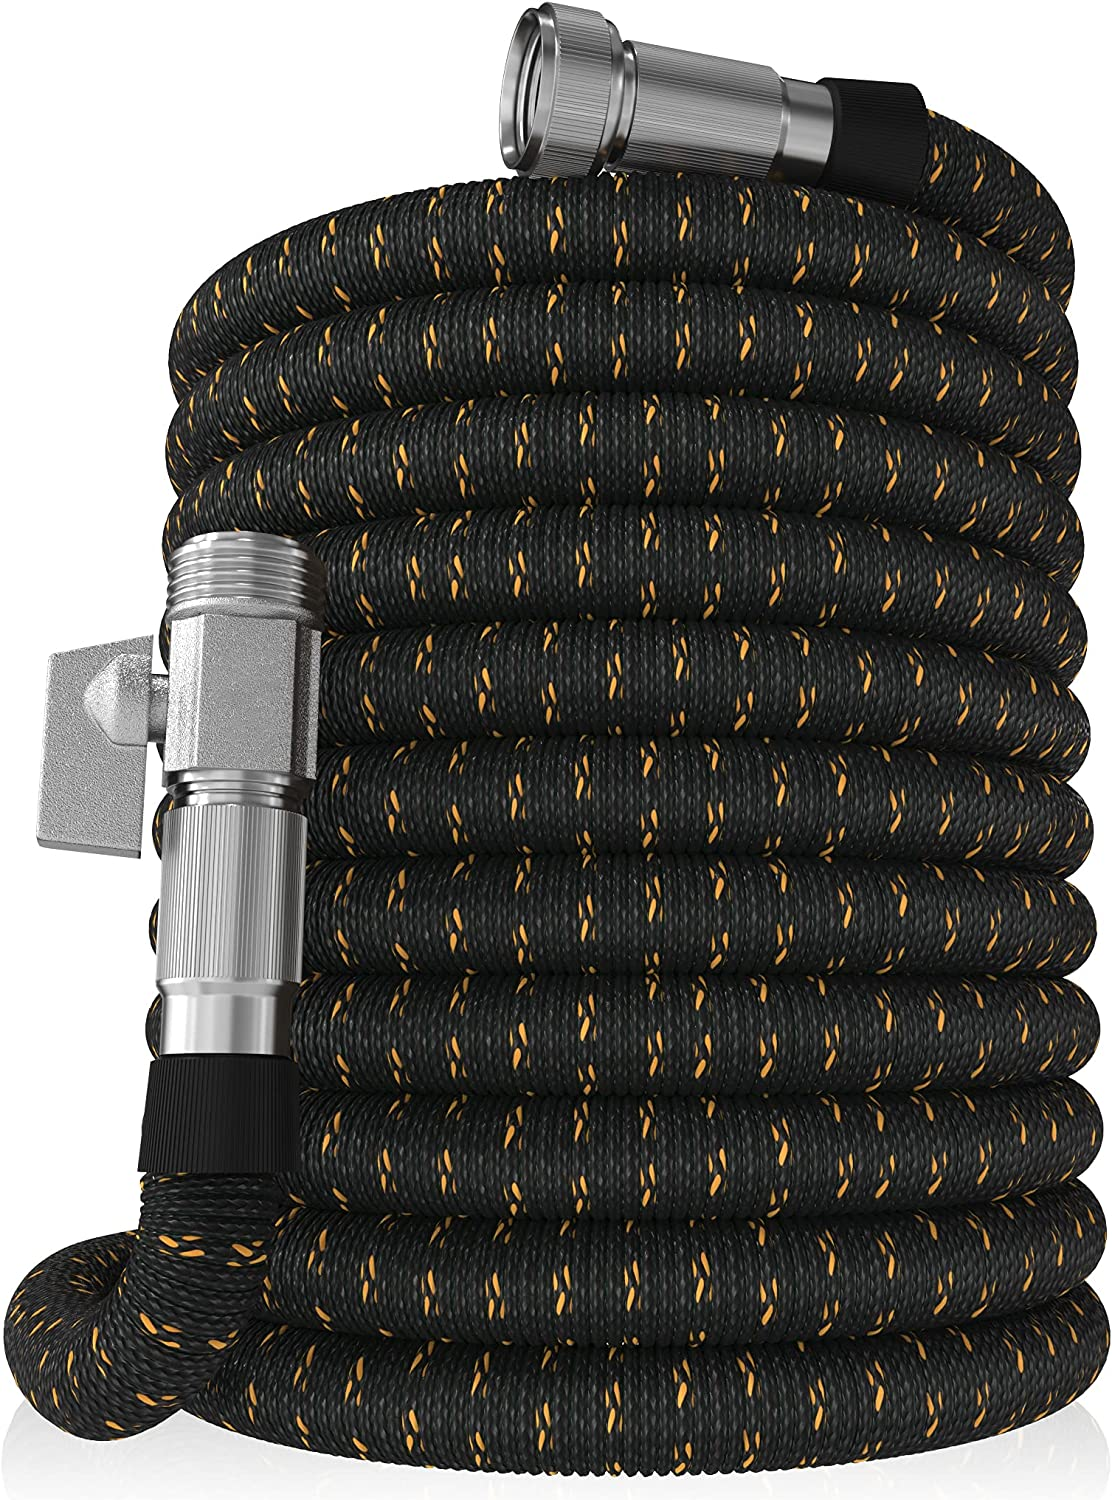 GUIDEGARDEN 100ft Garden Hose - NEW Expandable Water Hose with Double Latex Core, 3/4